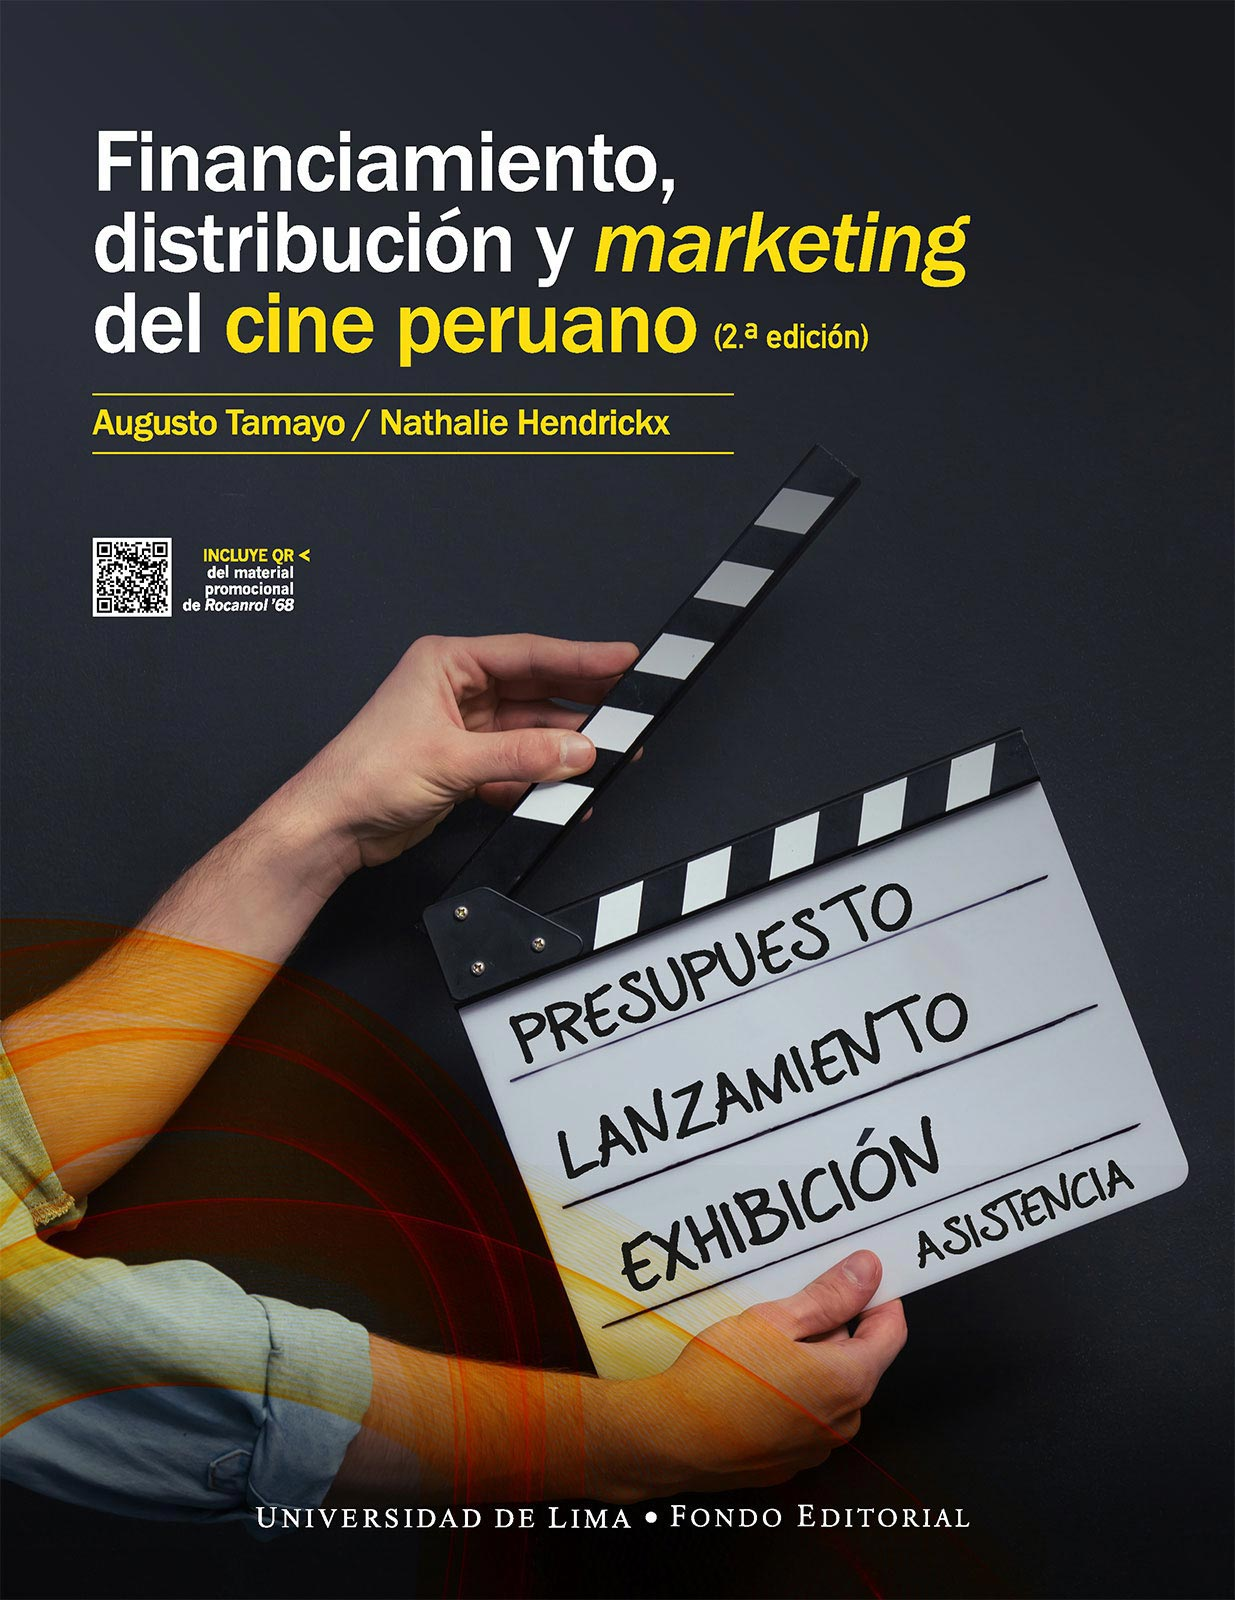 FINANCIAMIENTO, DISTRIBUCIÓN Y MARKETING DEL CINE PERUANO